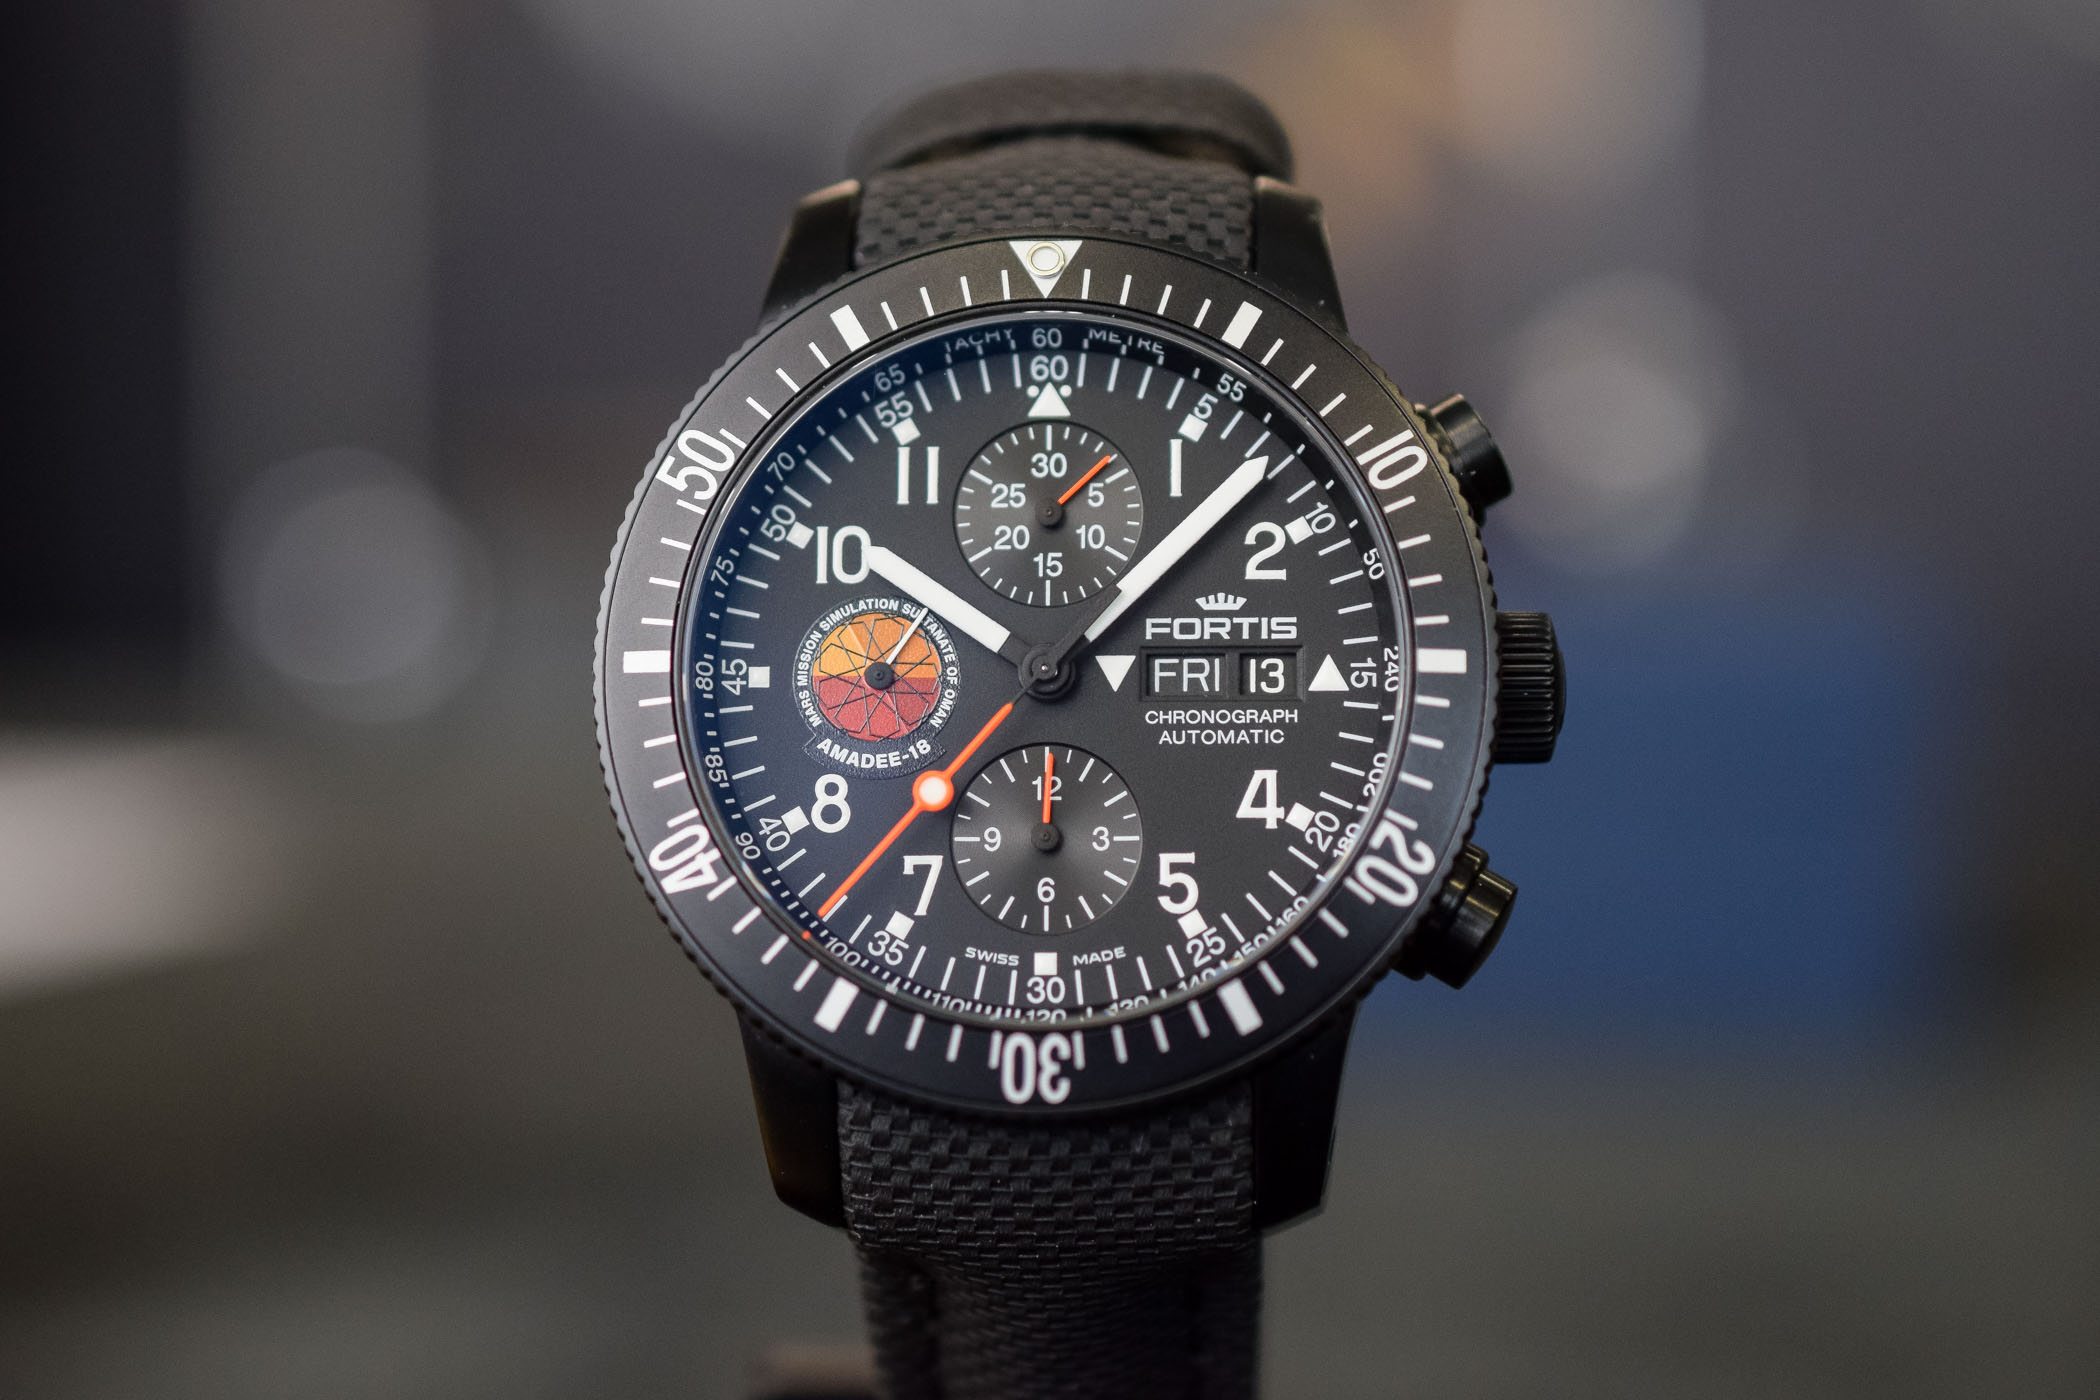 Fortis Official Cosmonauts Amadee-18 Chronograph